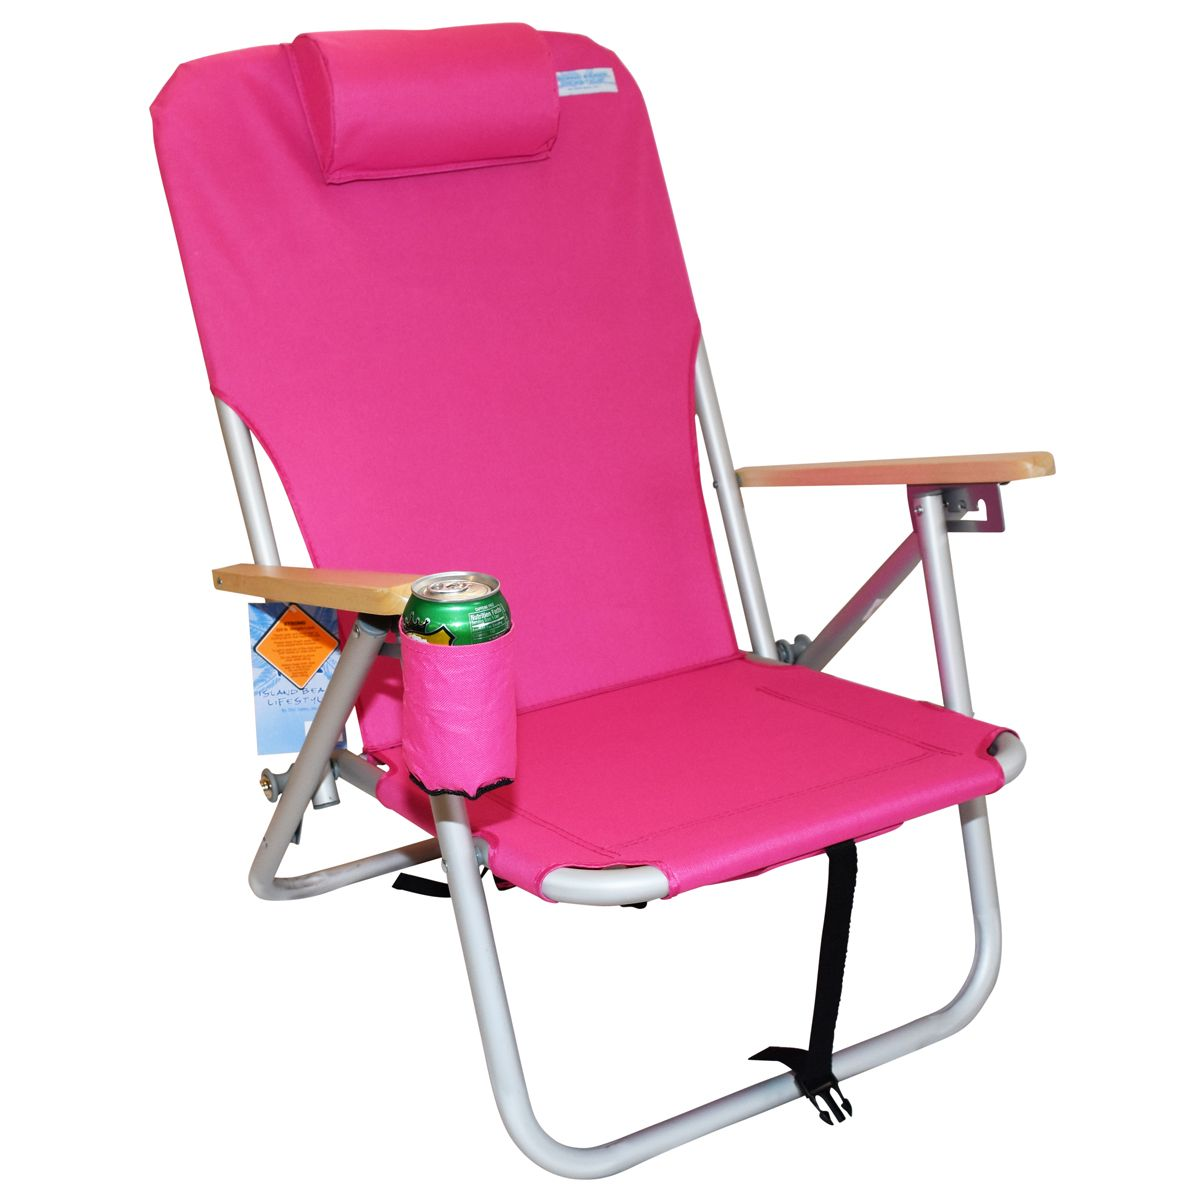 4 Positions Shoulder Strap Beach Chair Pink Product 15095 Brand Copa Lightweight Aluminum Sitting Wooden Arms Cup Holder